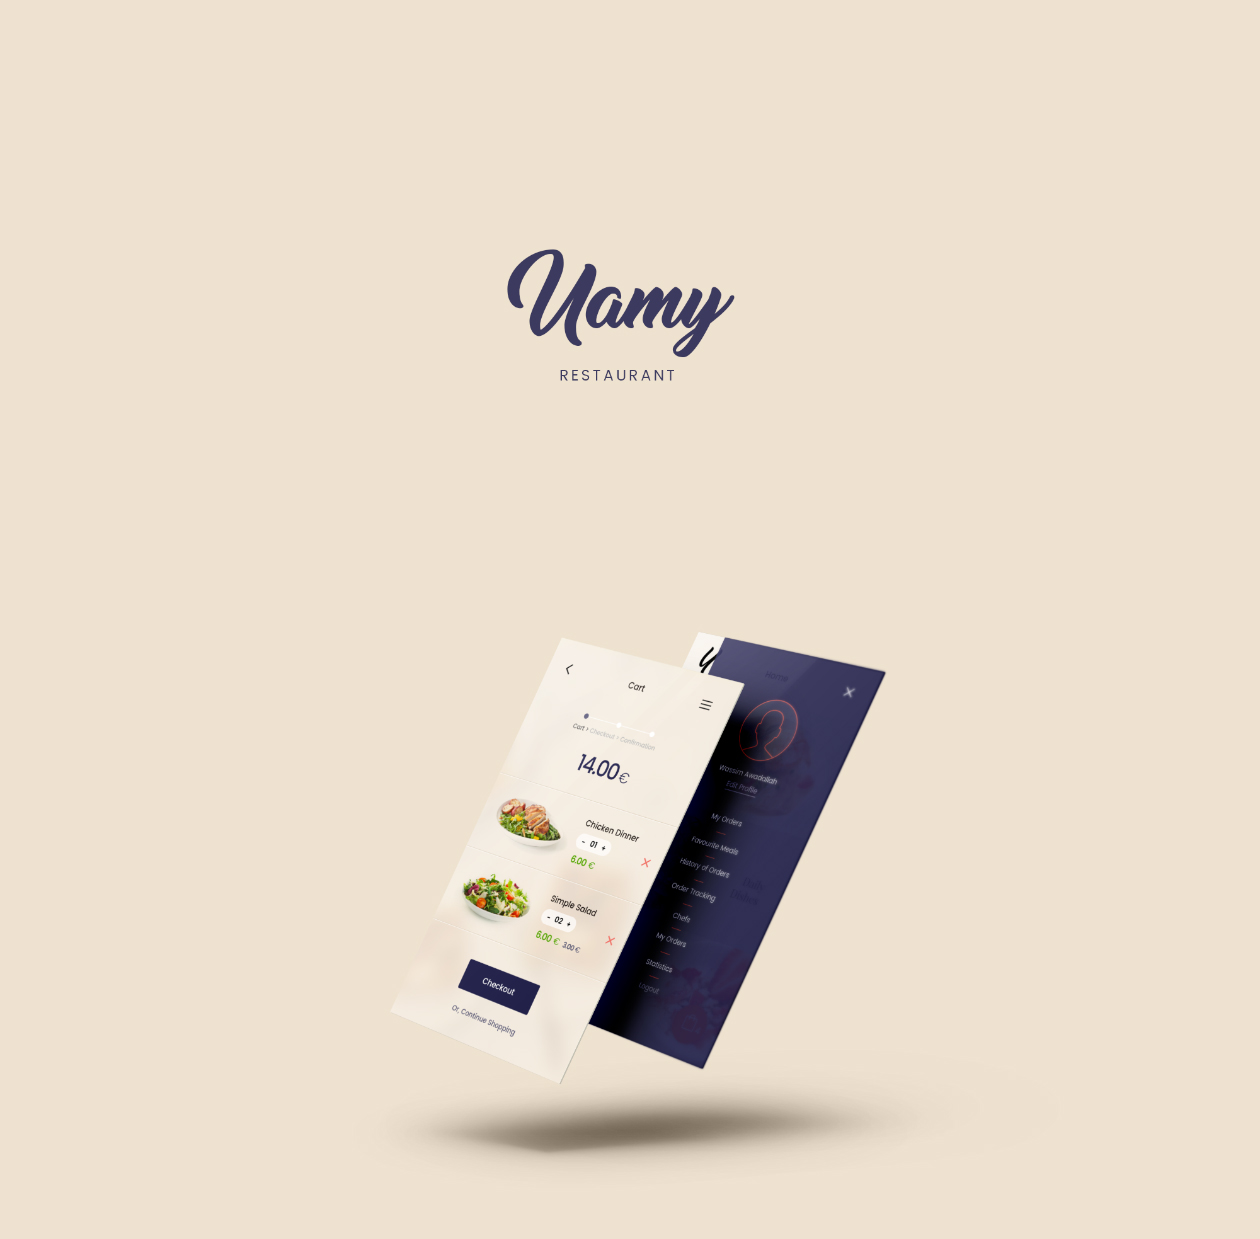 Yamy Restaurant Ui Kit